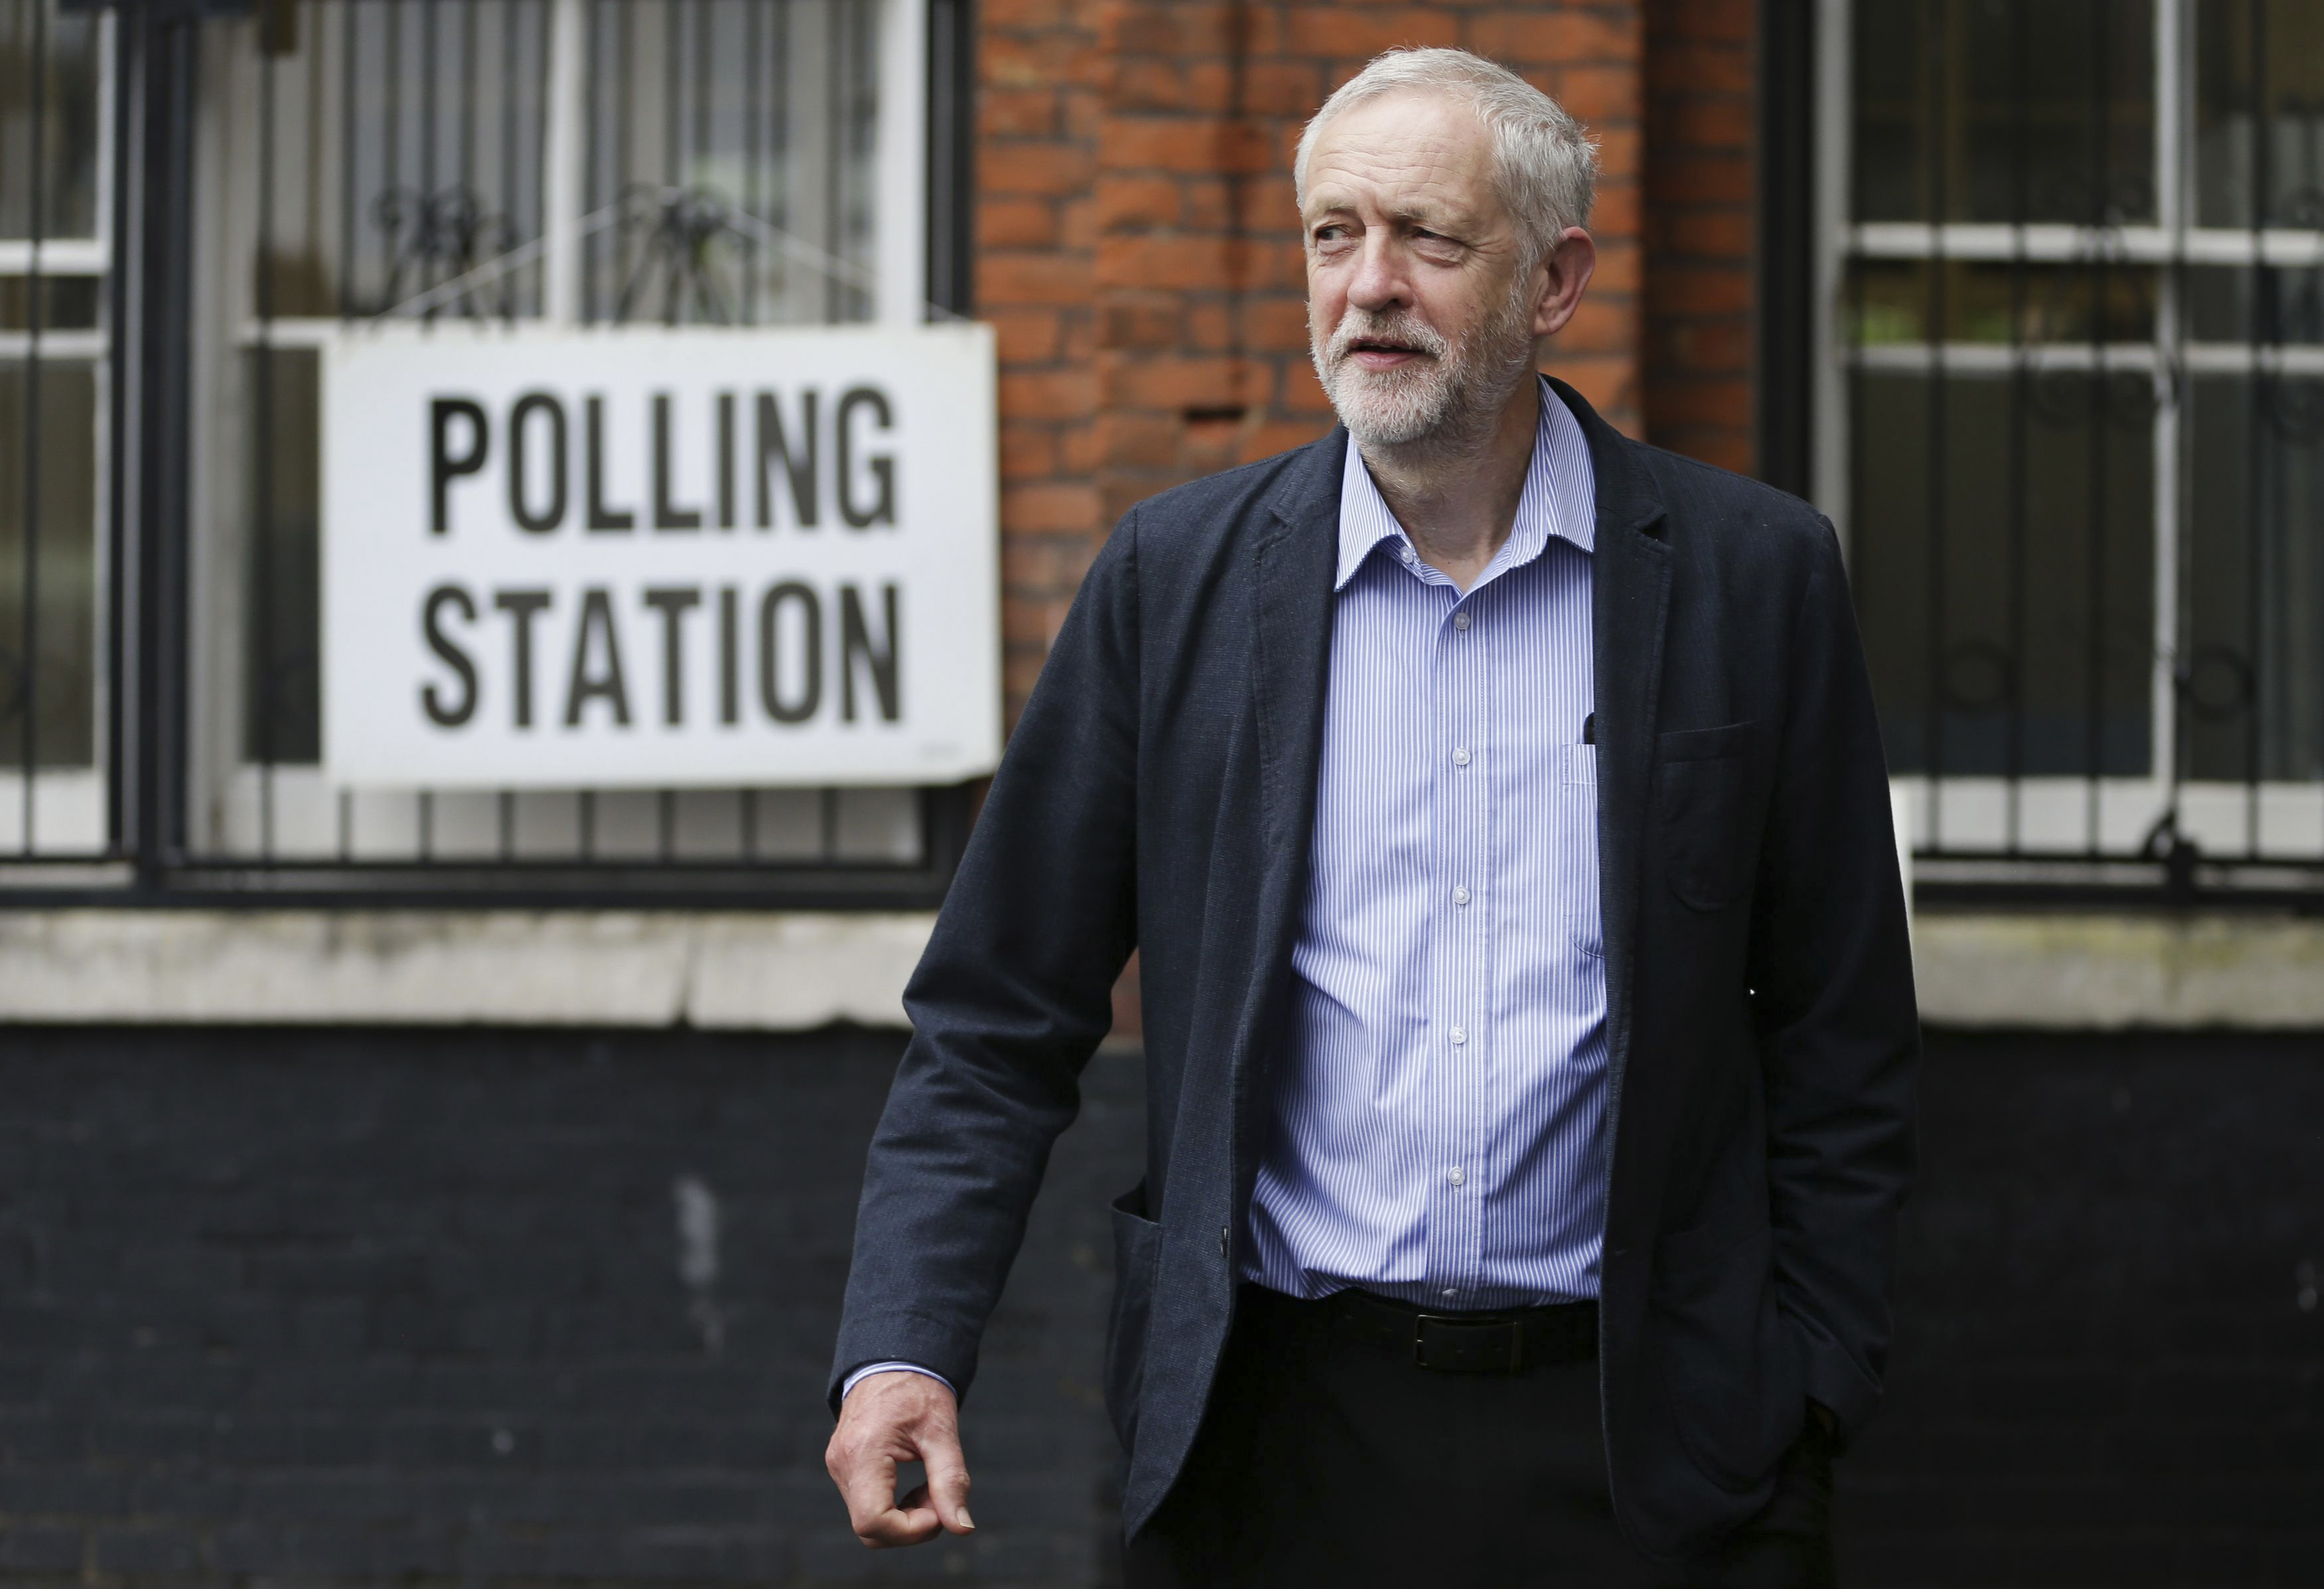 Britain's Labour Party leader Jeremy Corbyn smiles as he arrives to cast his vote in the EU referendum at a polling station in Islington, London Thursday June 23, 2016. Voters in Britain are deciding Thursday whether the country should remain in the European Union. (Daniel Leal-Olivas/PA via AP) UNITED KINGDOM OUT - NO SALES - NO ARCHIVE